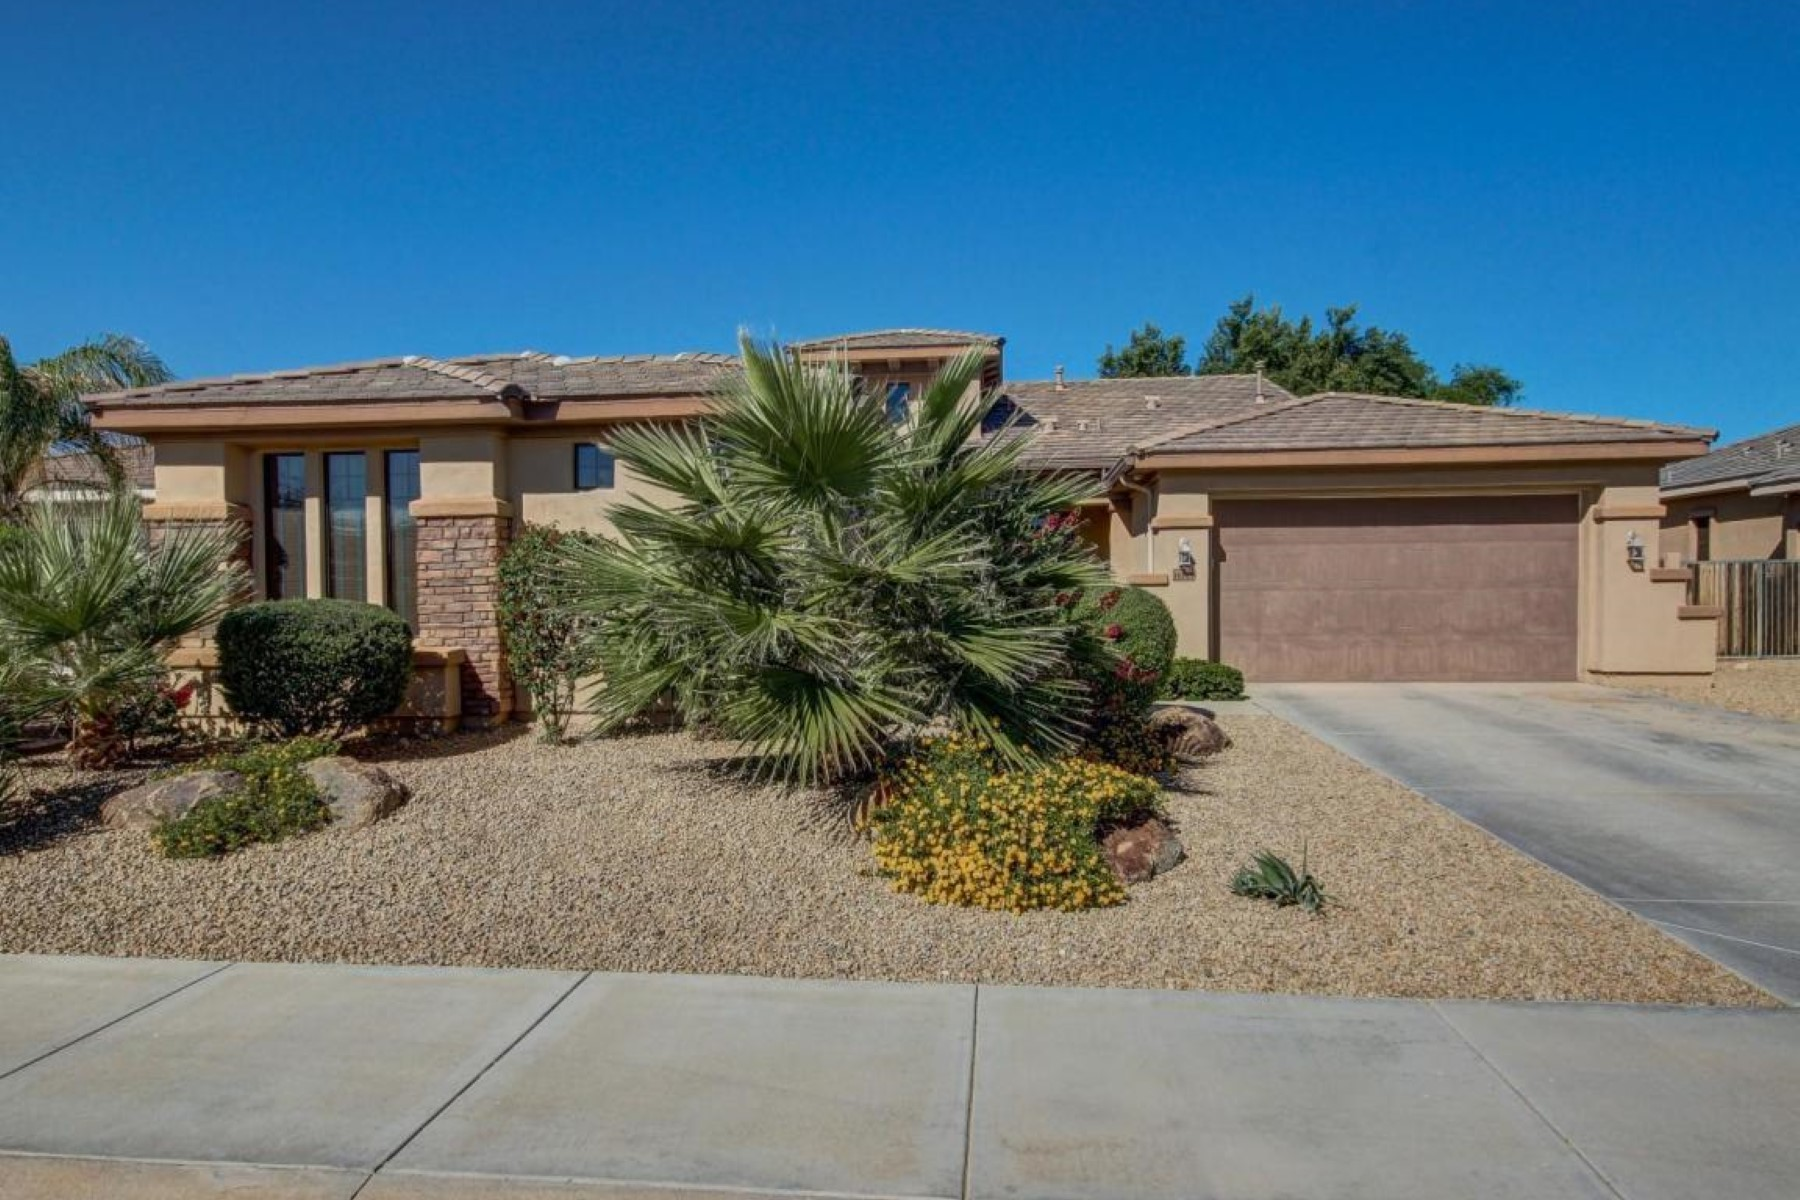 Property For Sale at Single story home in Goodyear